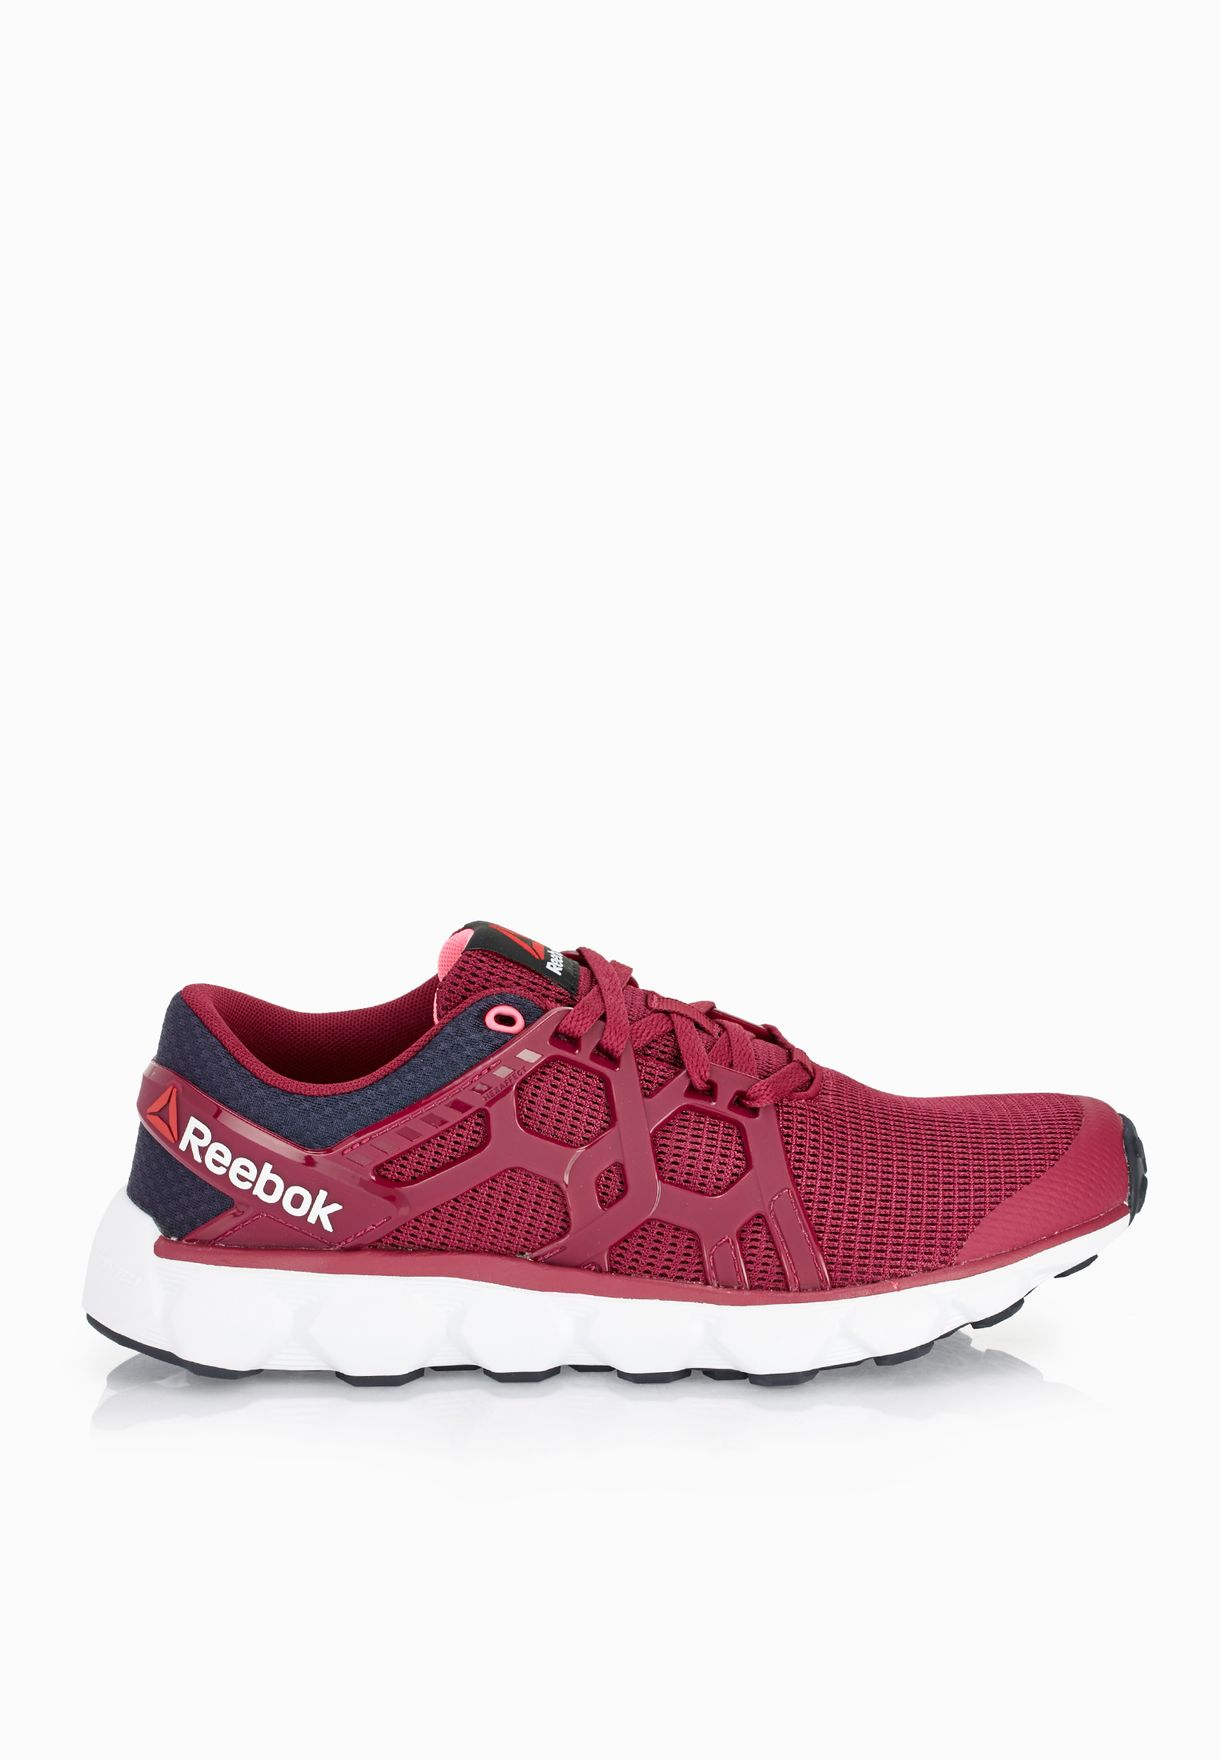 a6e3de06b6c Shop Reebok purple Hexaffect Run 4.0 AR3095 for Women in Saudi -  RE019SH09OCO